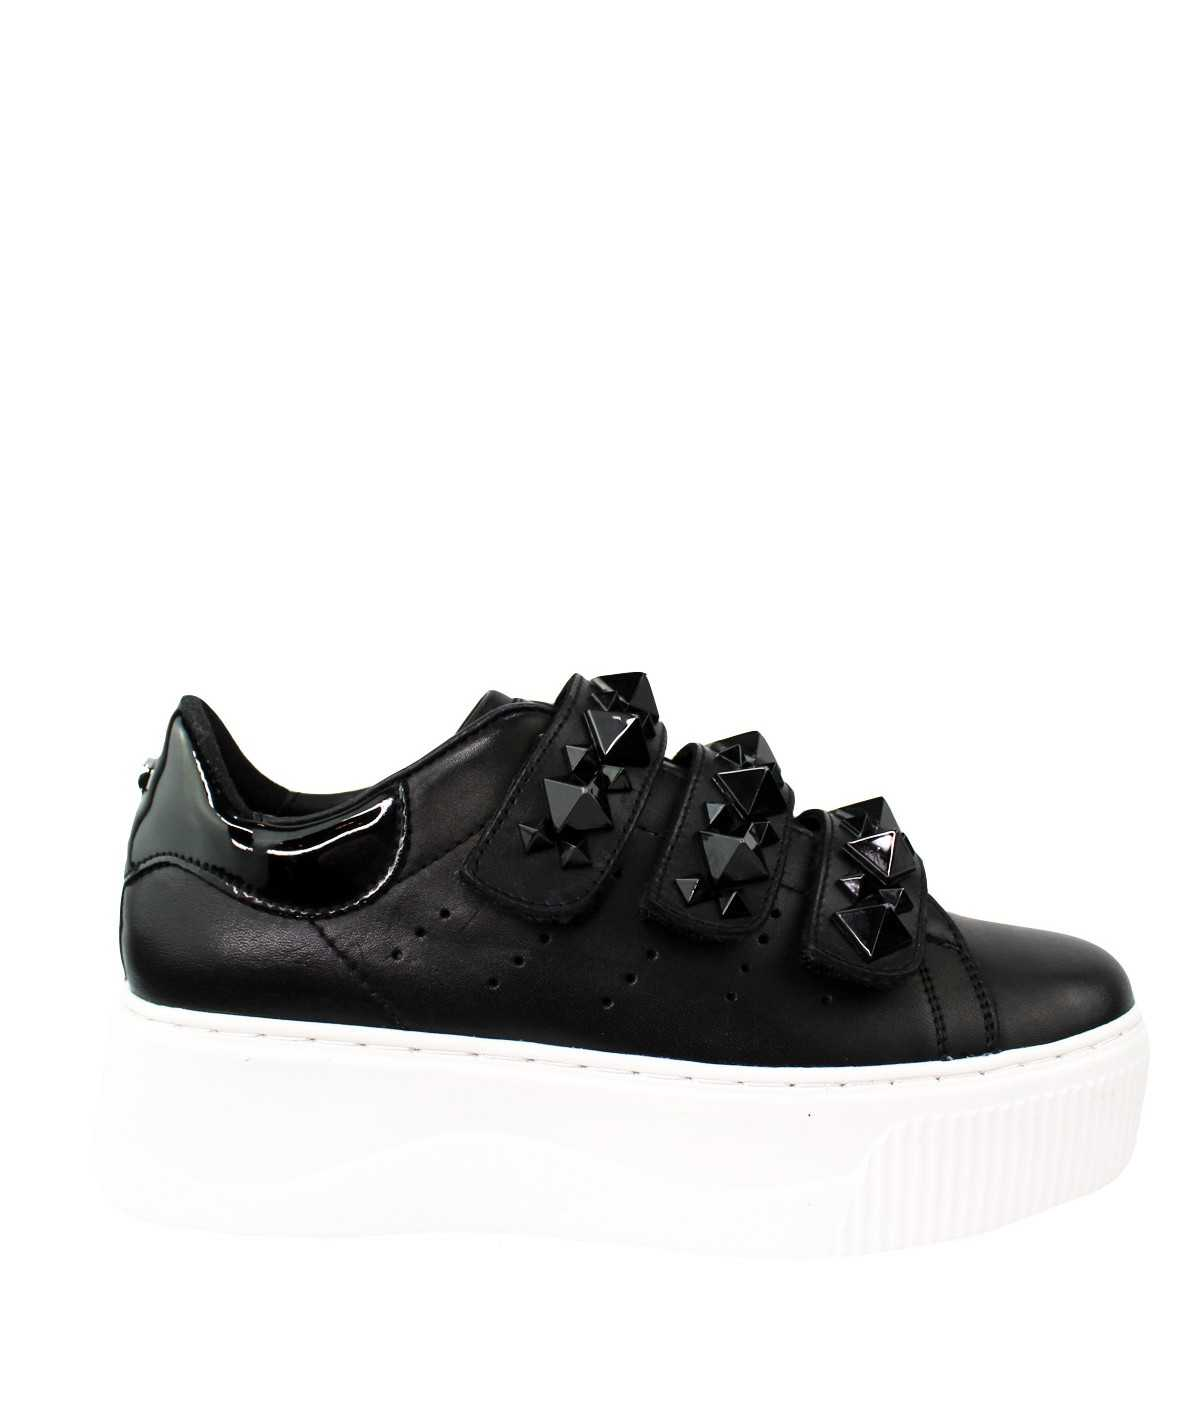 CULT Sneakers Donna